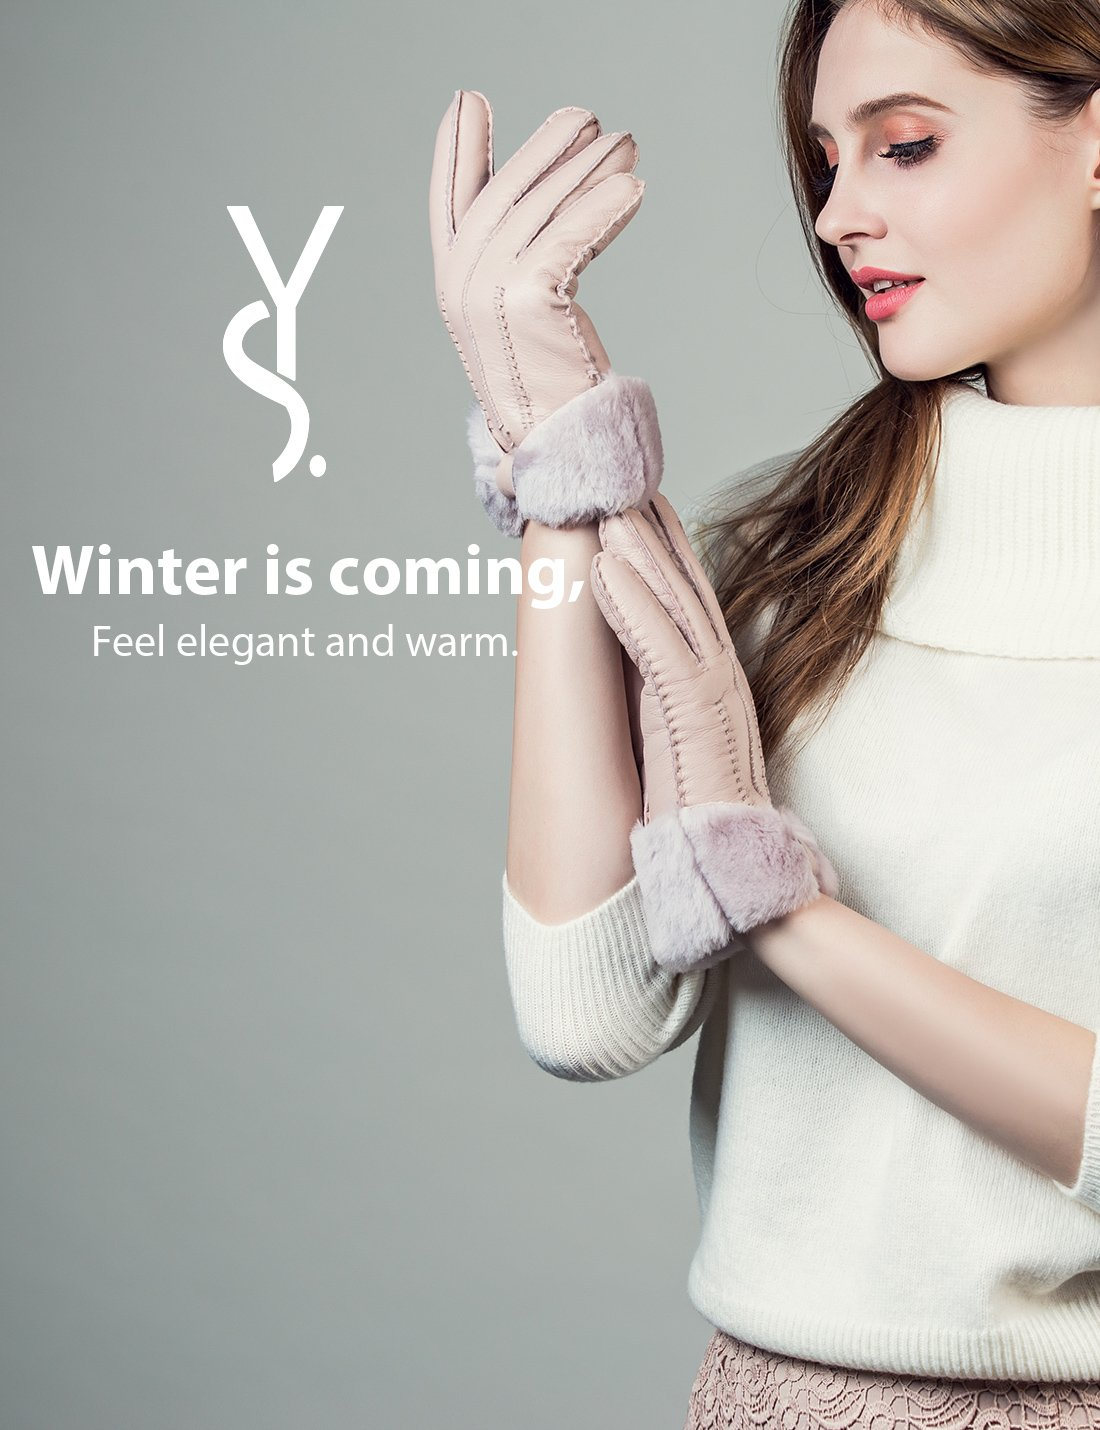 YISEVEN Women's Rugged Sheepskin Shearling Leather Gloves Three Points and Wing Cuffs Soft Thick Furry Fur Lined Warm Lining for Winter Cold Weather Heated Dress Driving Work Xmas Gifts, Pearl Pink S by YISEVEN (Image #6)